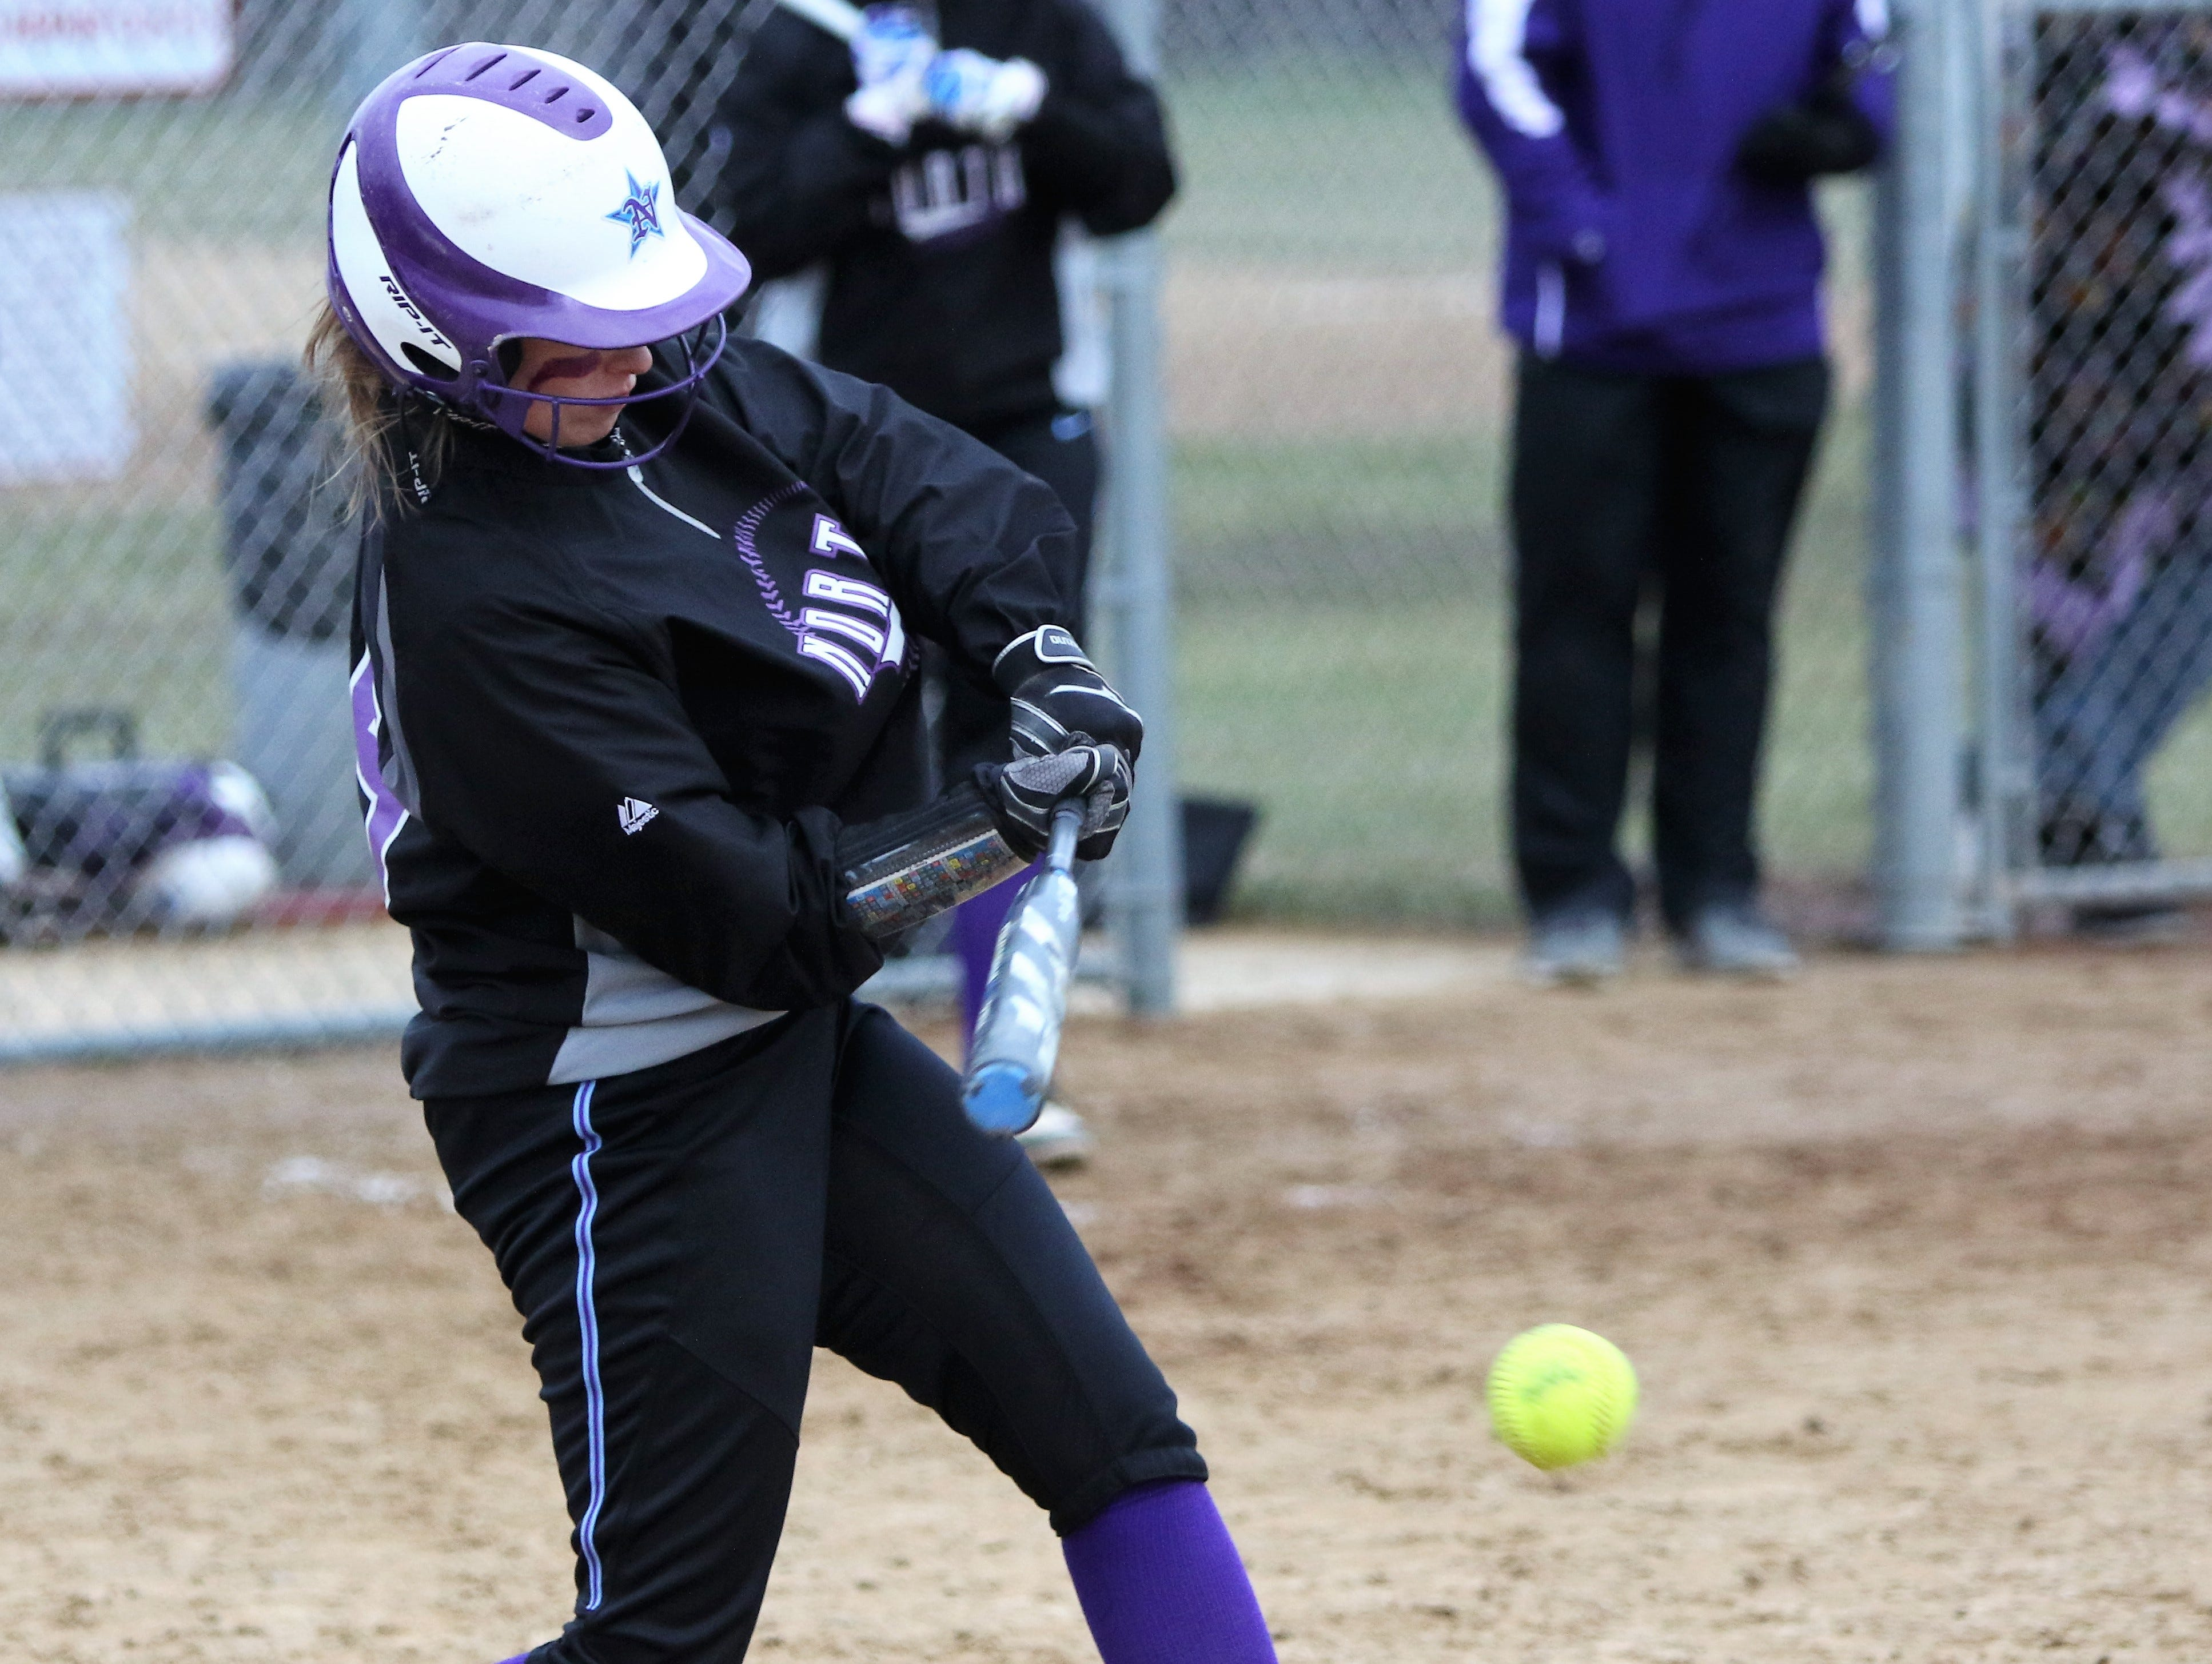 Waukesha North senior Liz Sweet hits a grounder against Muskego on April 12, 2019.